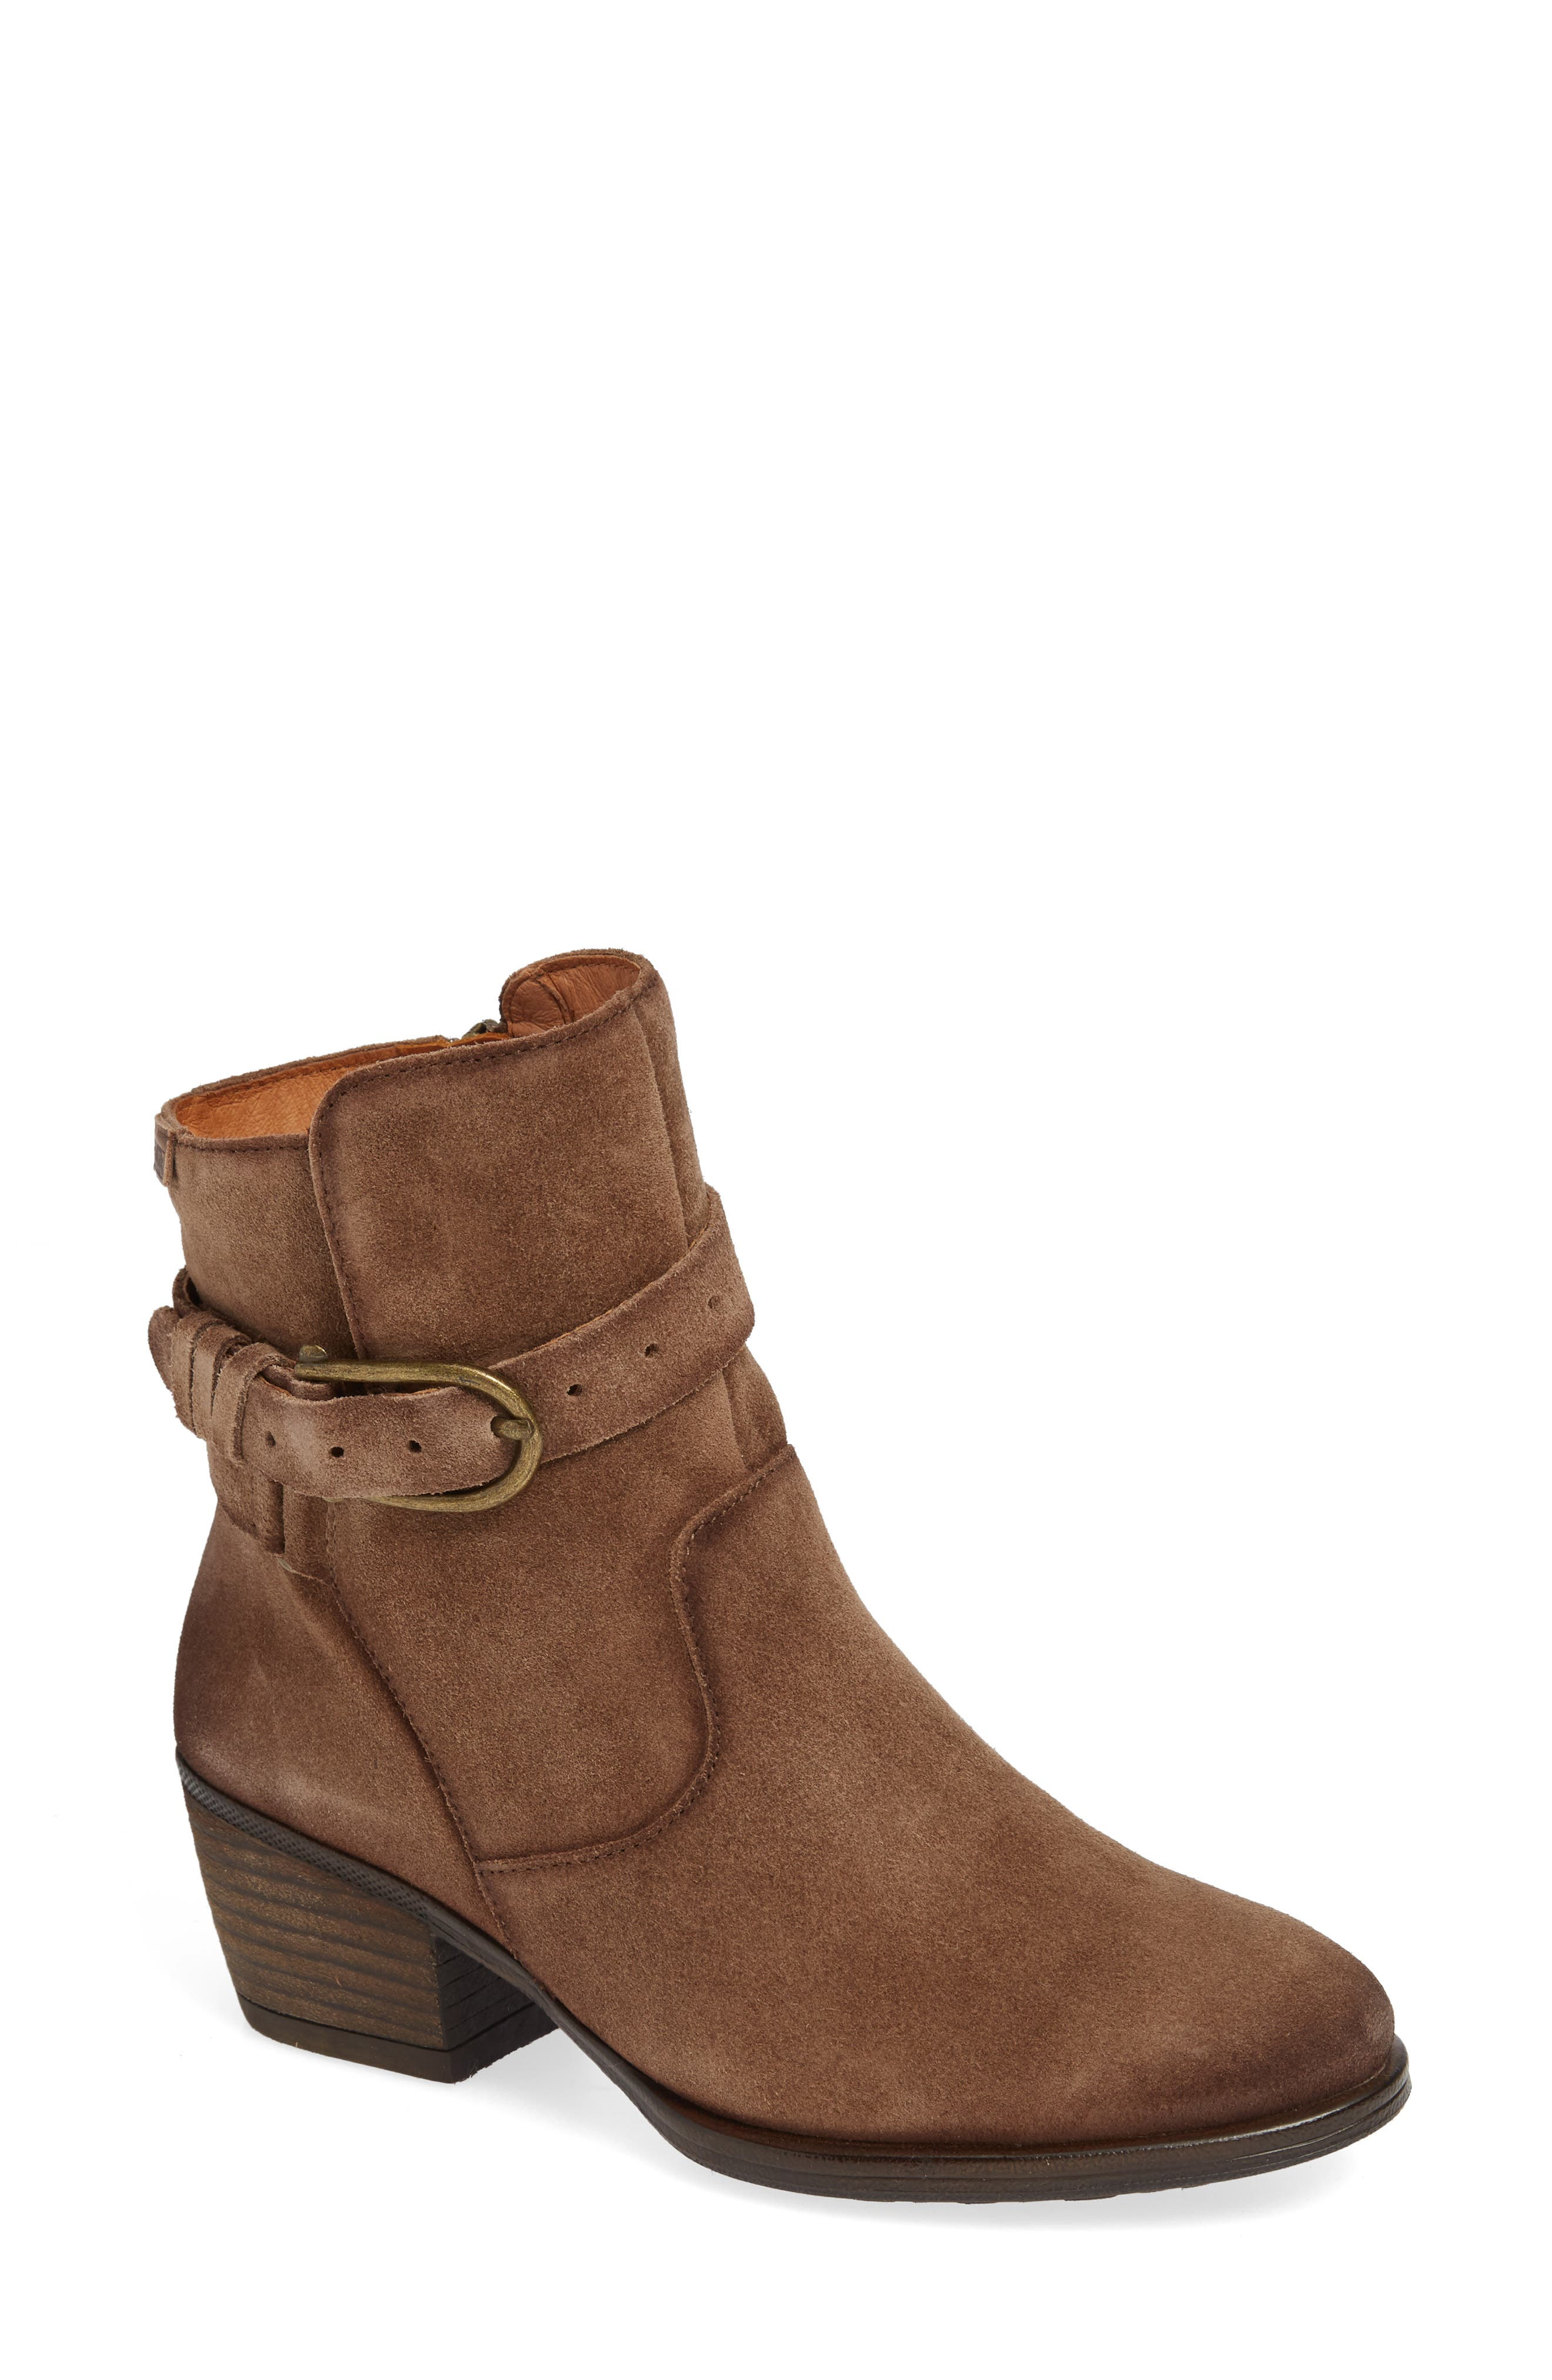 Baqueira Belted Bootie,                             Main thumbnail 1, color,                             STONE SUEDE